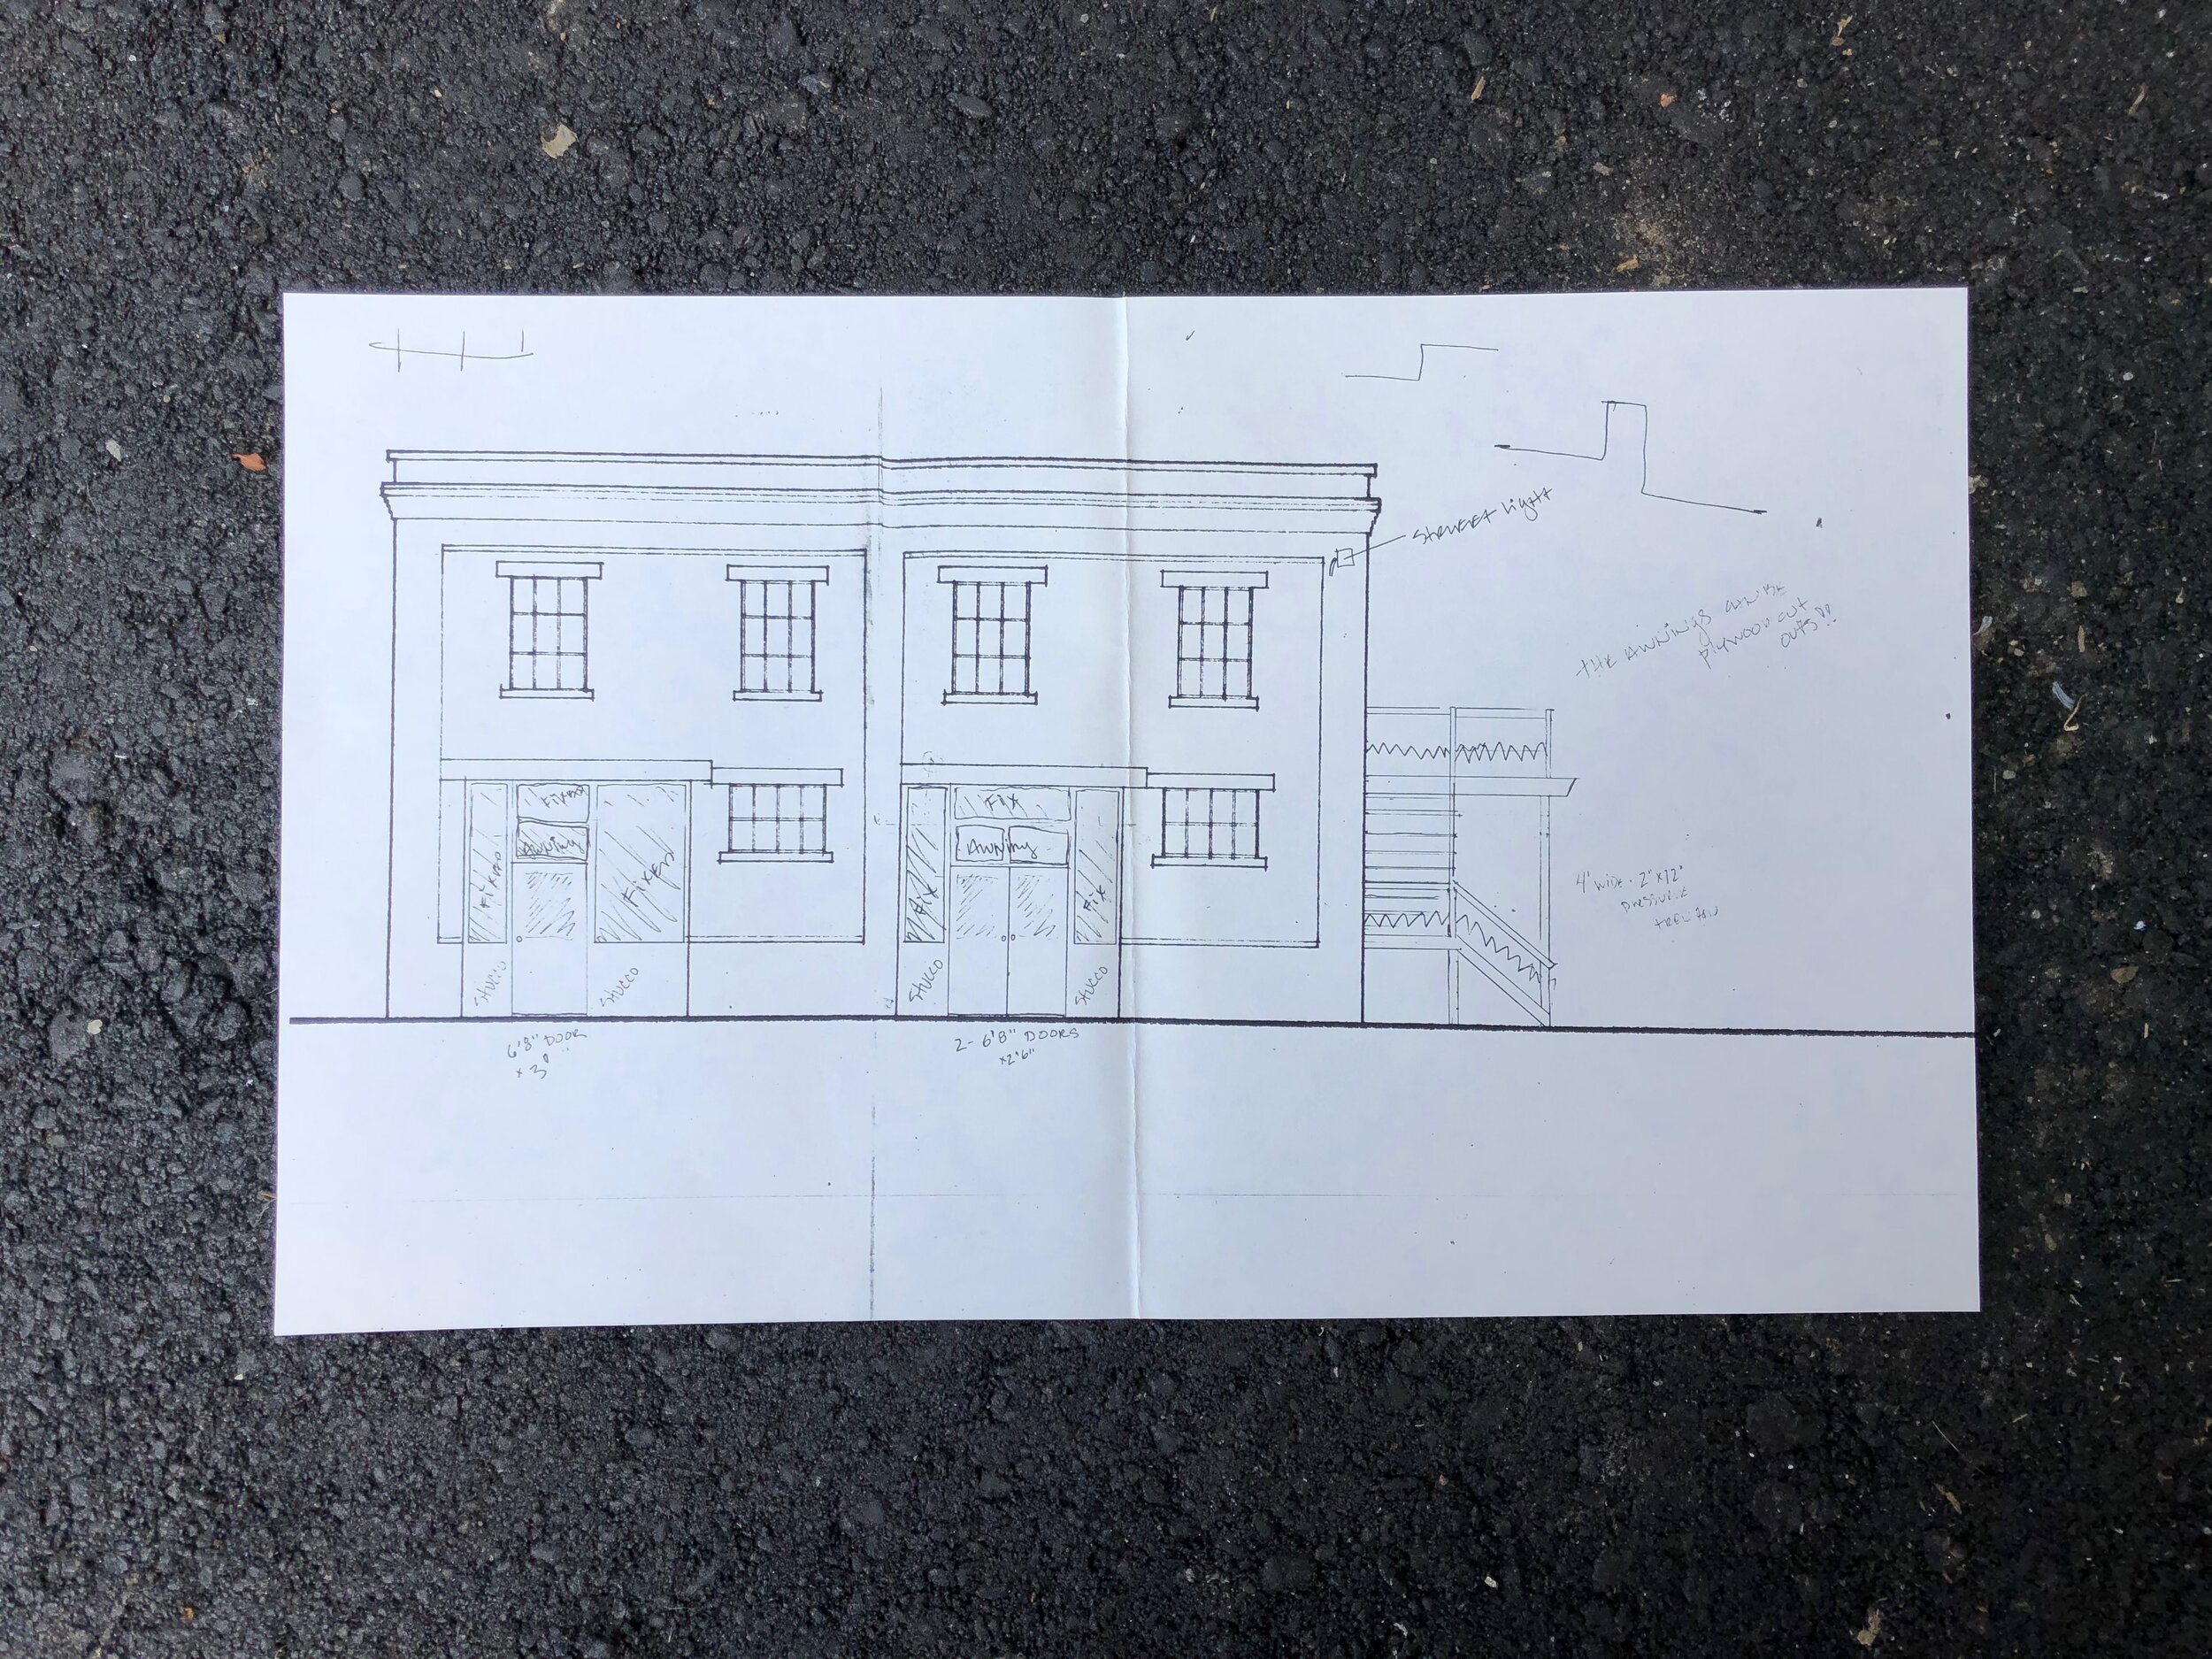 Architectural drawing from 1992 of #7 River Arts Place